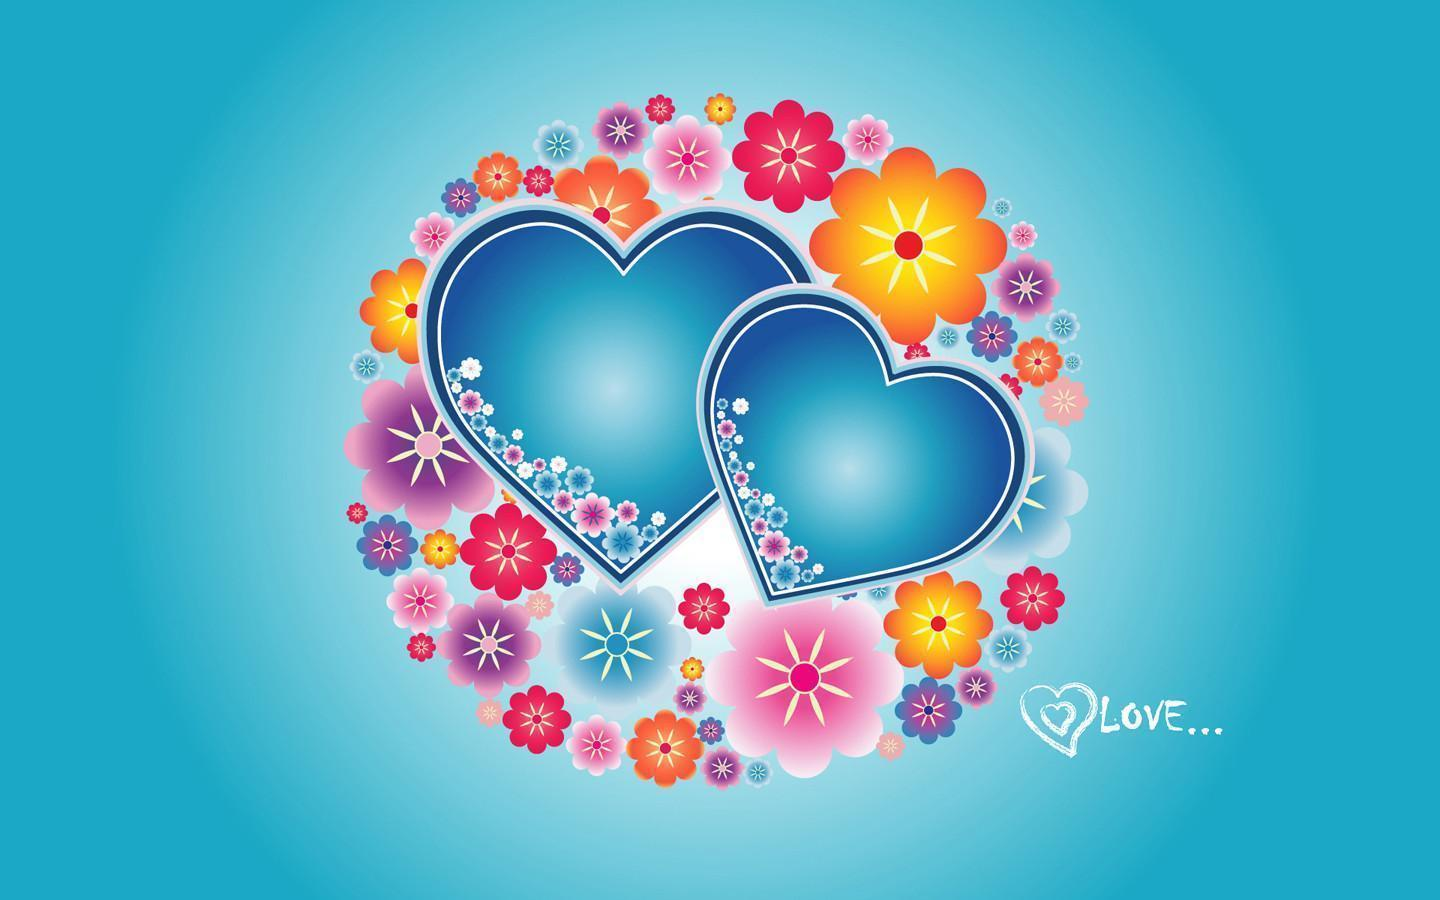 Love Heart Full Hd Wallpaper : Love Heart Wallpapers HD - Wallpaper cave